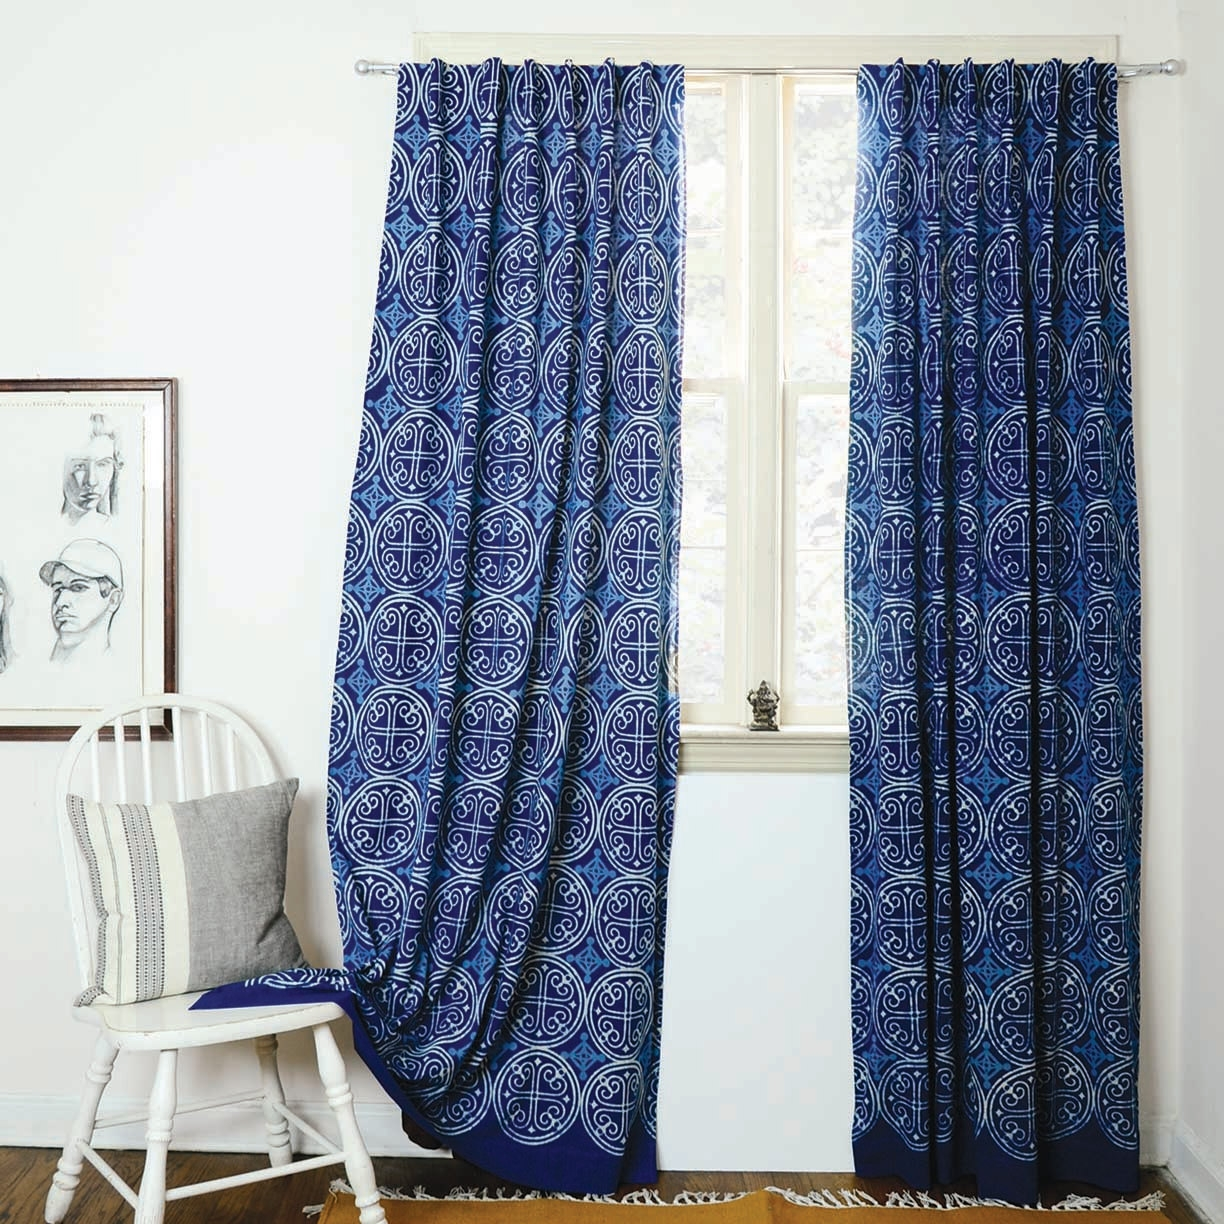 Indigo Curtains Blue Curtains Window Boho Bedroom Home Decor Intended For Blue Bedroom Curtains (Image 12 of 15)